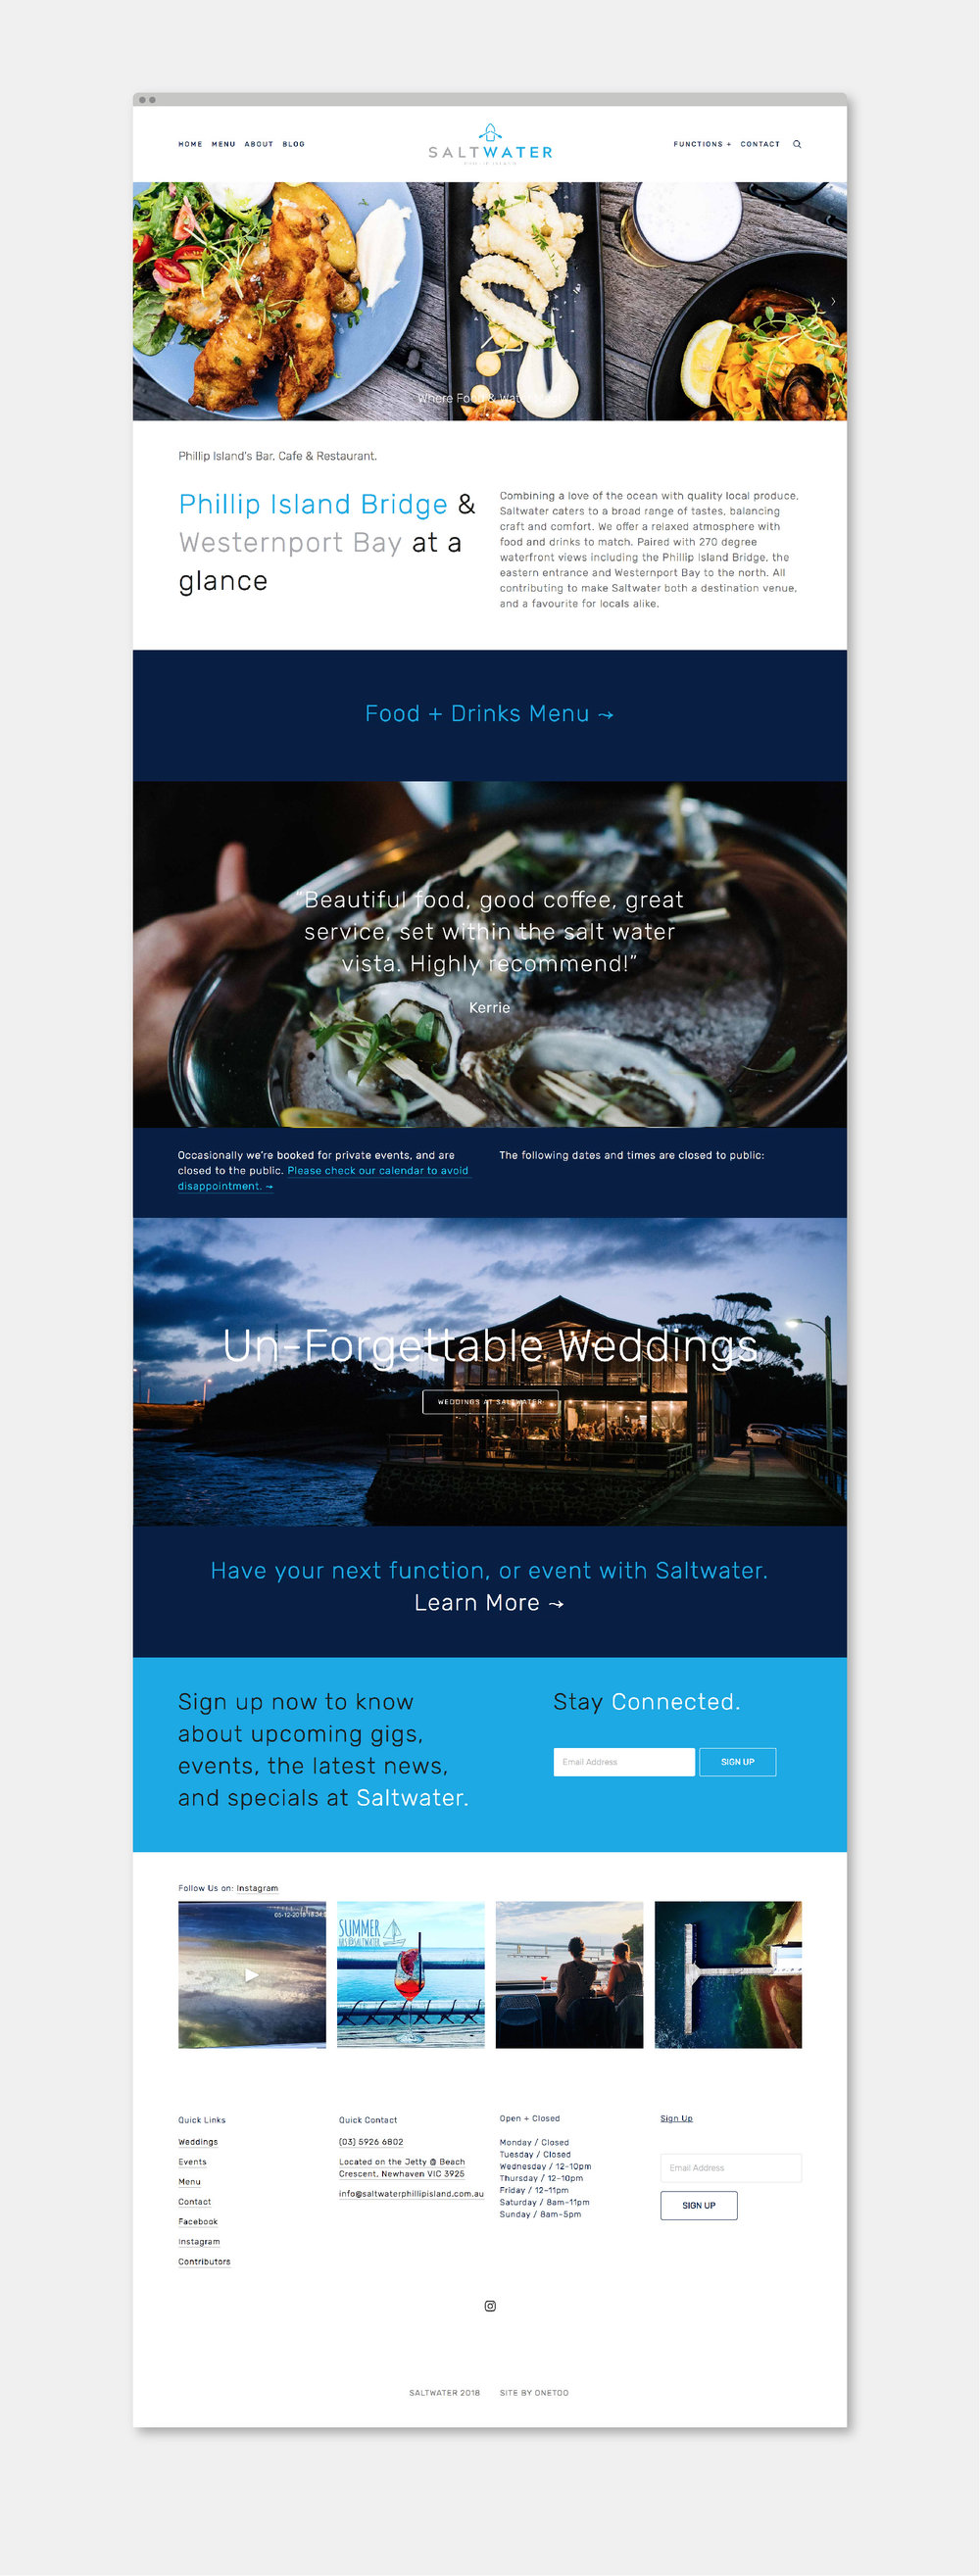 Salt Water mornington peninsula web design.jpg